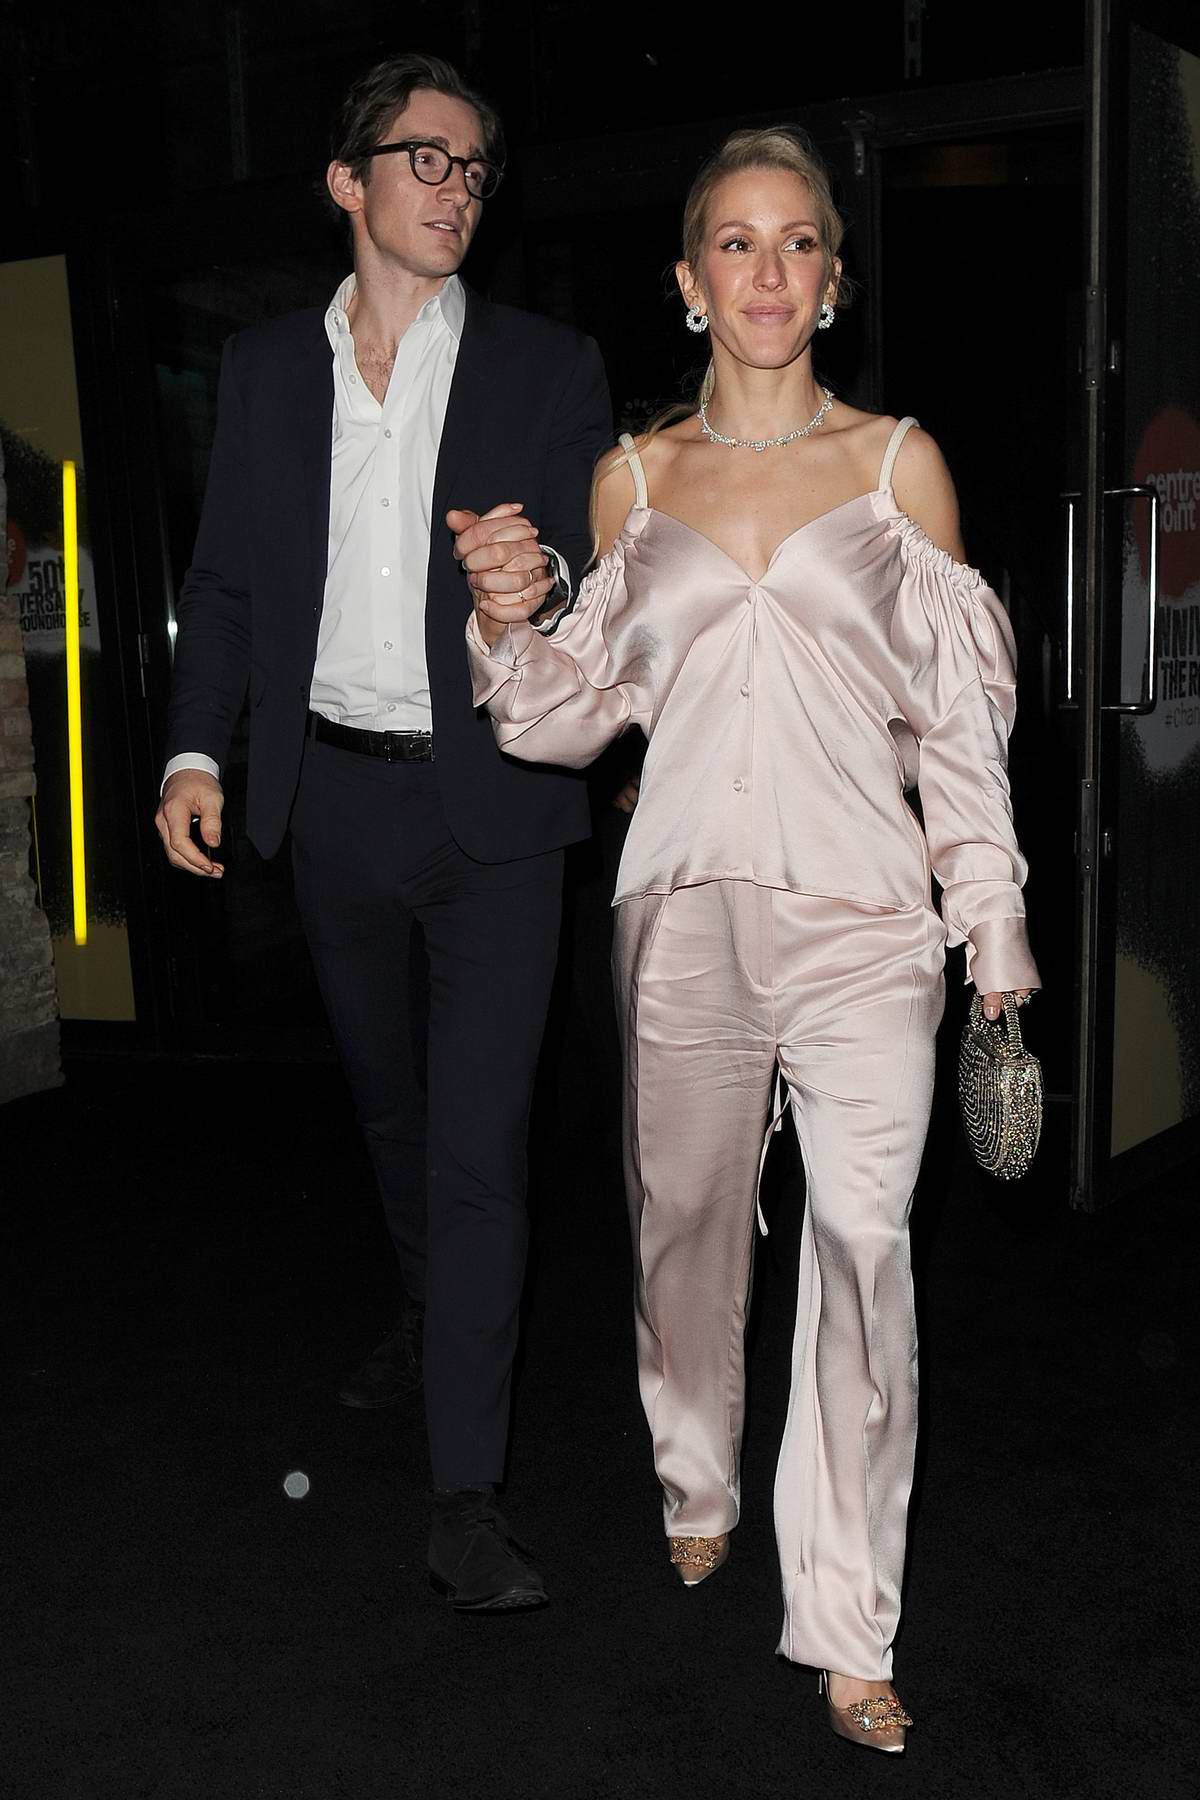 Ellie Goulding and Caspar Jopling seen leaving Centrepoint 50th Anniversary Gala at The Camden Roundhouse in London, UK